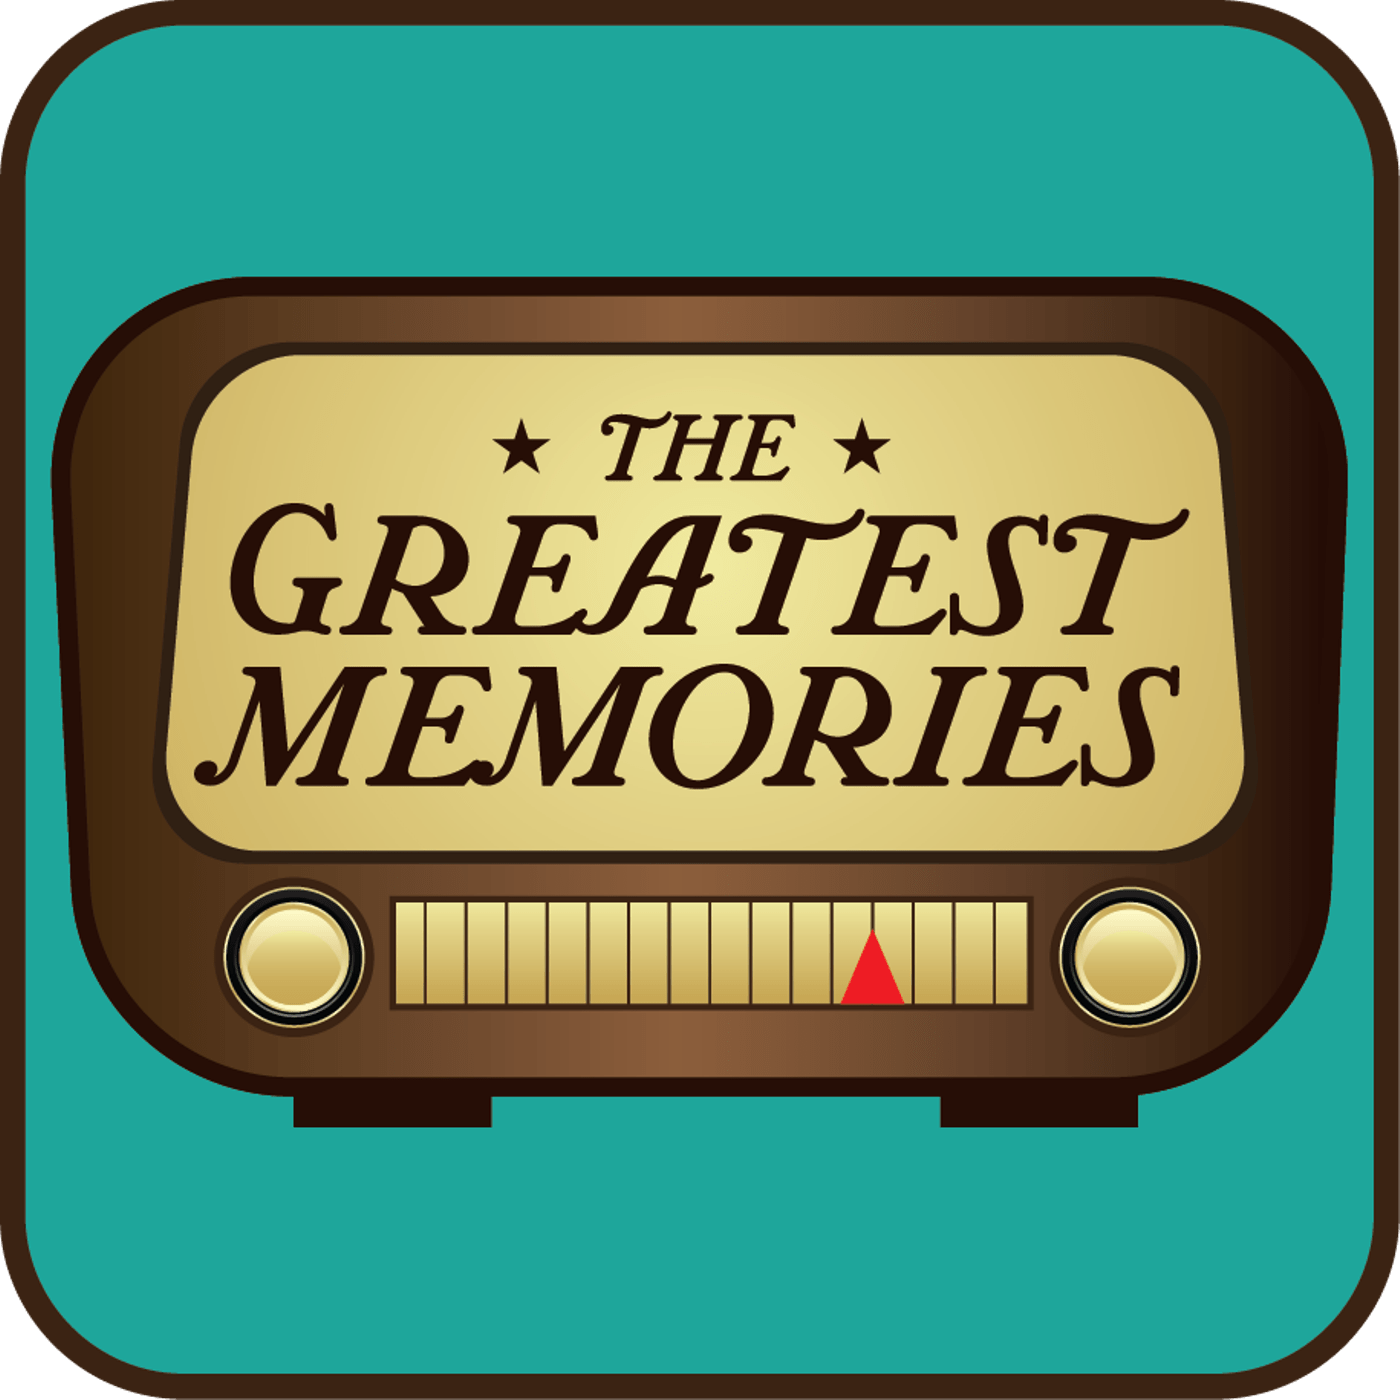 The Greatest Memories – August 2017